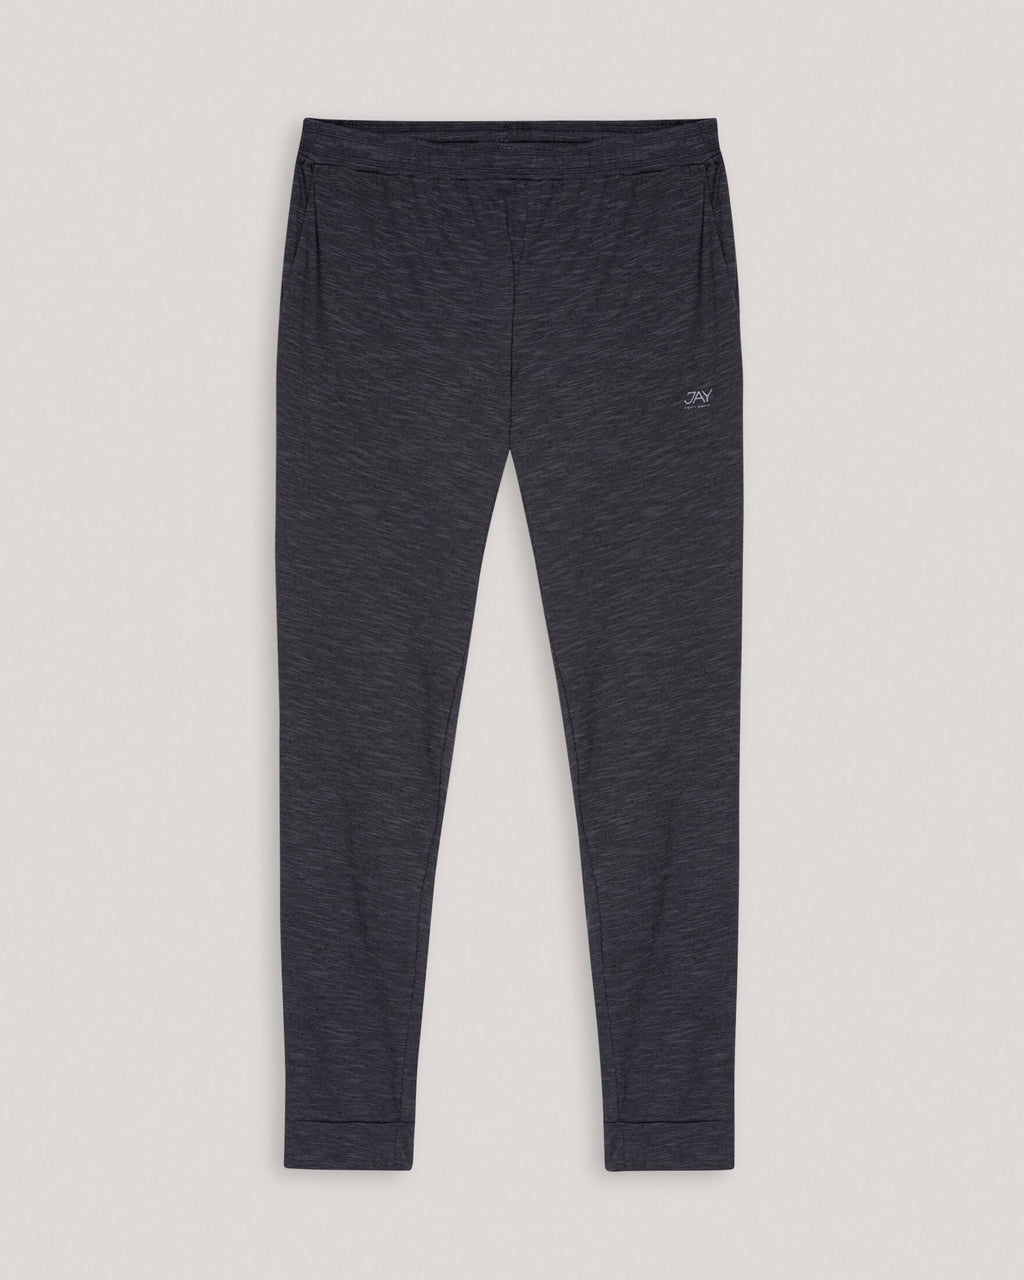 variant_1 | EN Grey Yoga Sport Pants Men | DE Graue Sport Yoga Hose Herren